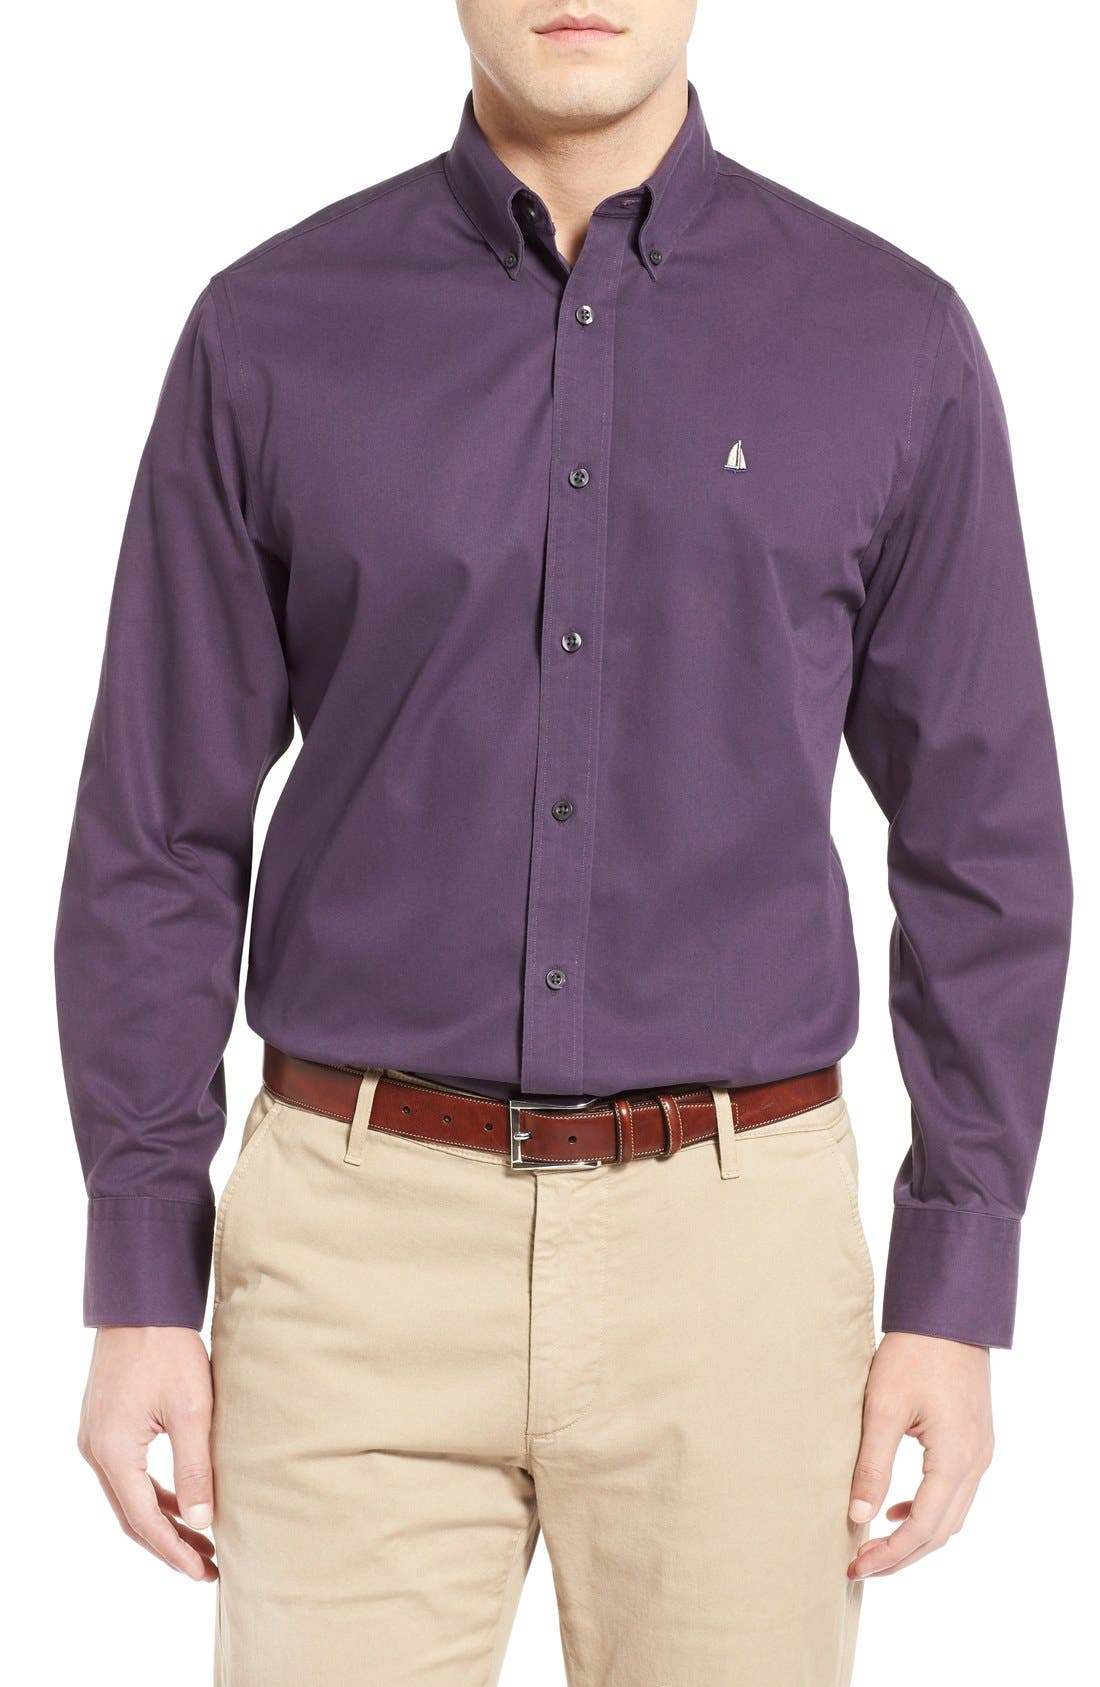 NORDSTROM MEN'S SHOP, Smartcare<sup>™</sup> Traditional Fit Twill Boat Shirt, Main thumbnail 1, color, PURPLE NIGHT